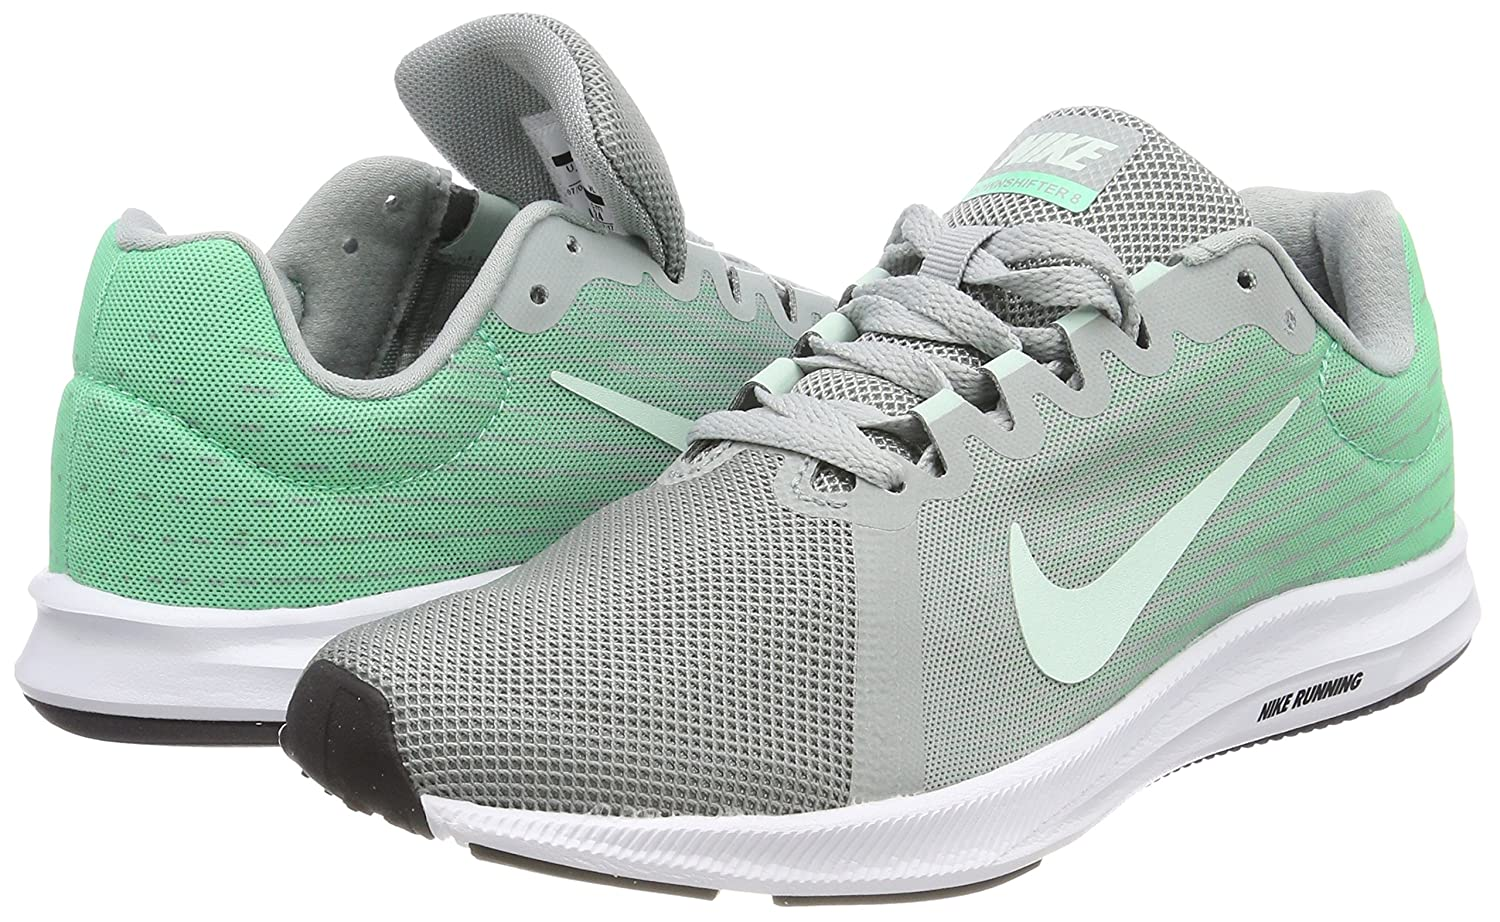 NIKE Women's Downshifter 8 Running US|Light Shoe B0761YX77N 7.5 B(M) US|Light Running Pumice/Igloo/Green Glow/White f4e584